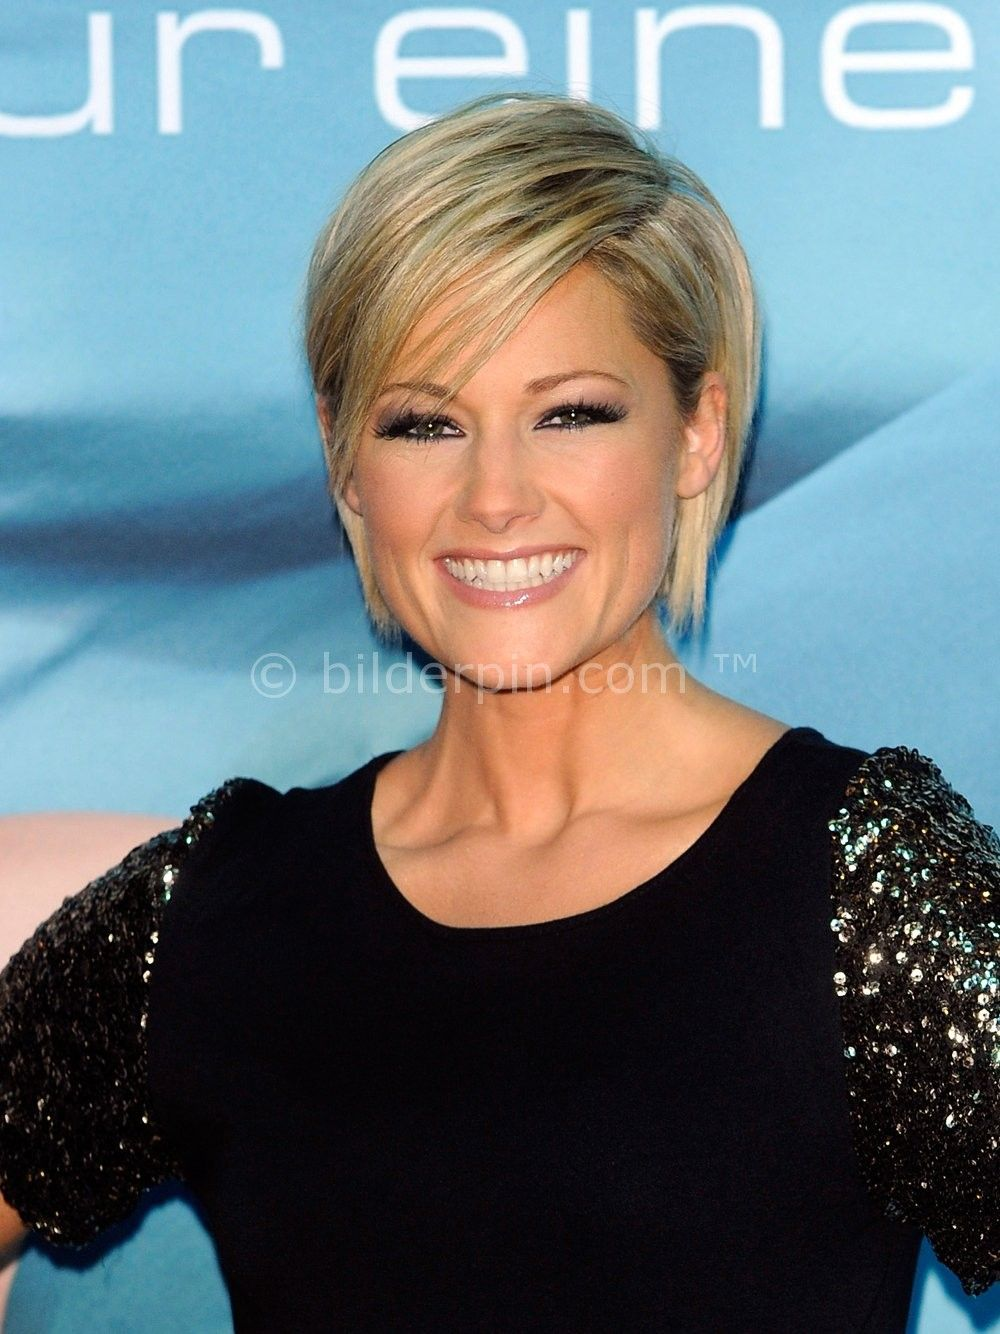 helene fischer frisur kurze oder lange haare. Black Bedroom Furniture Sets. Home Design Ideas